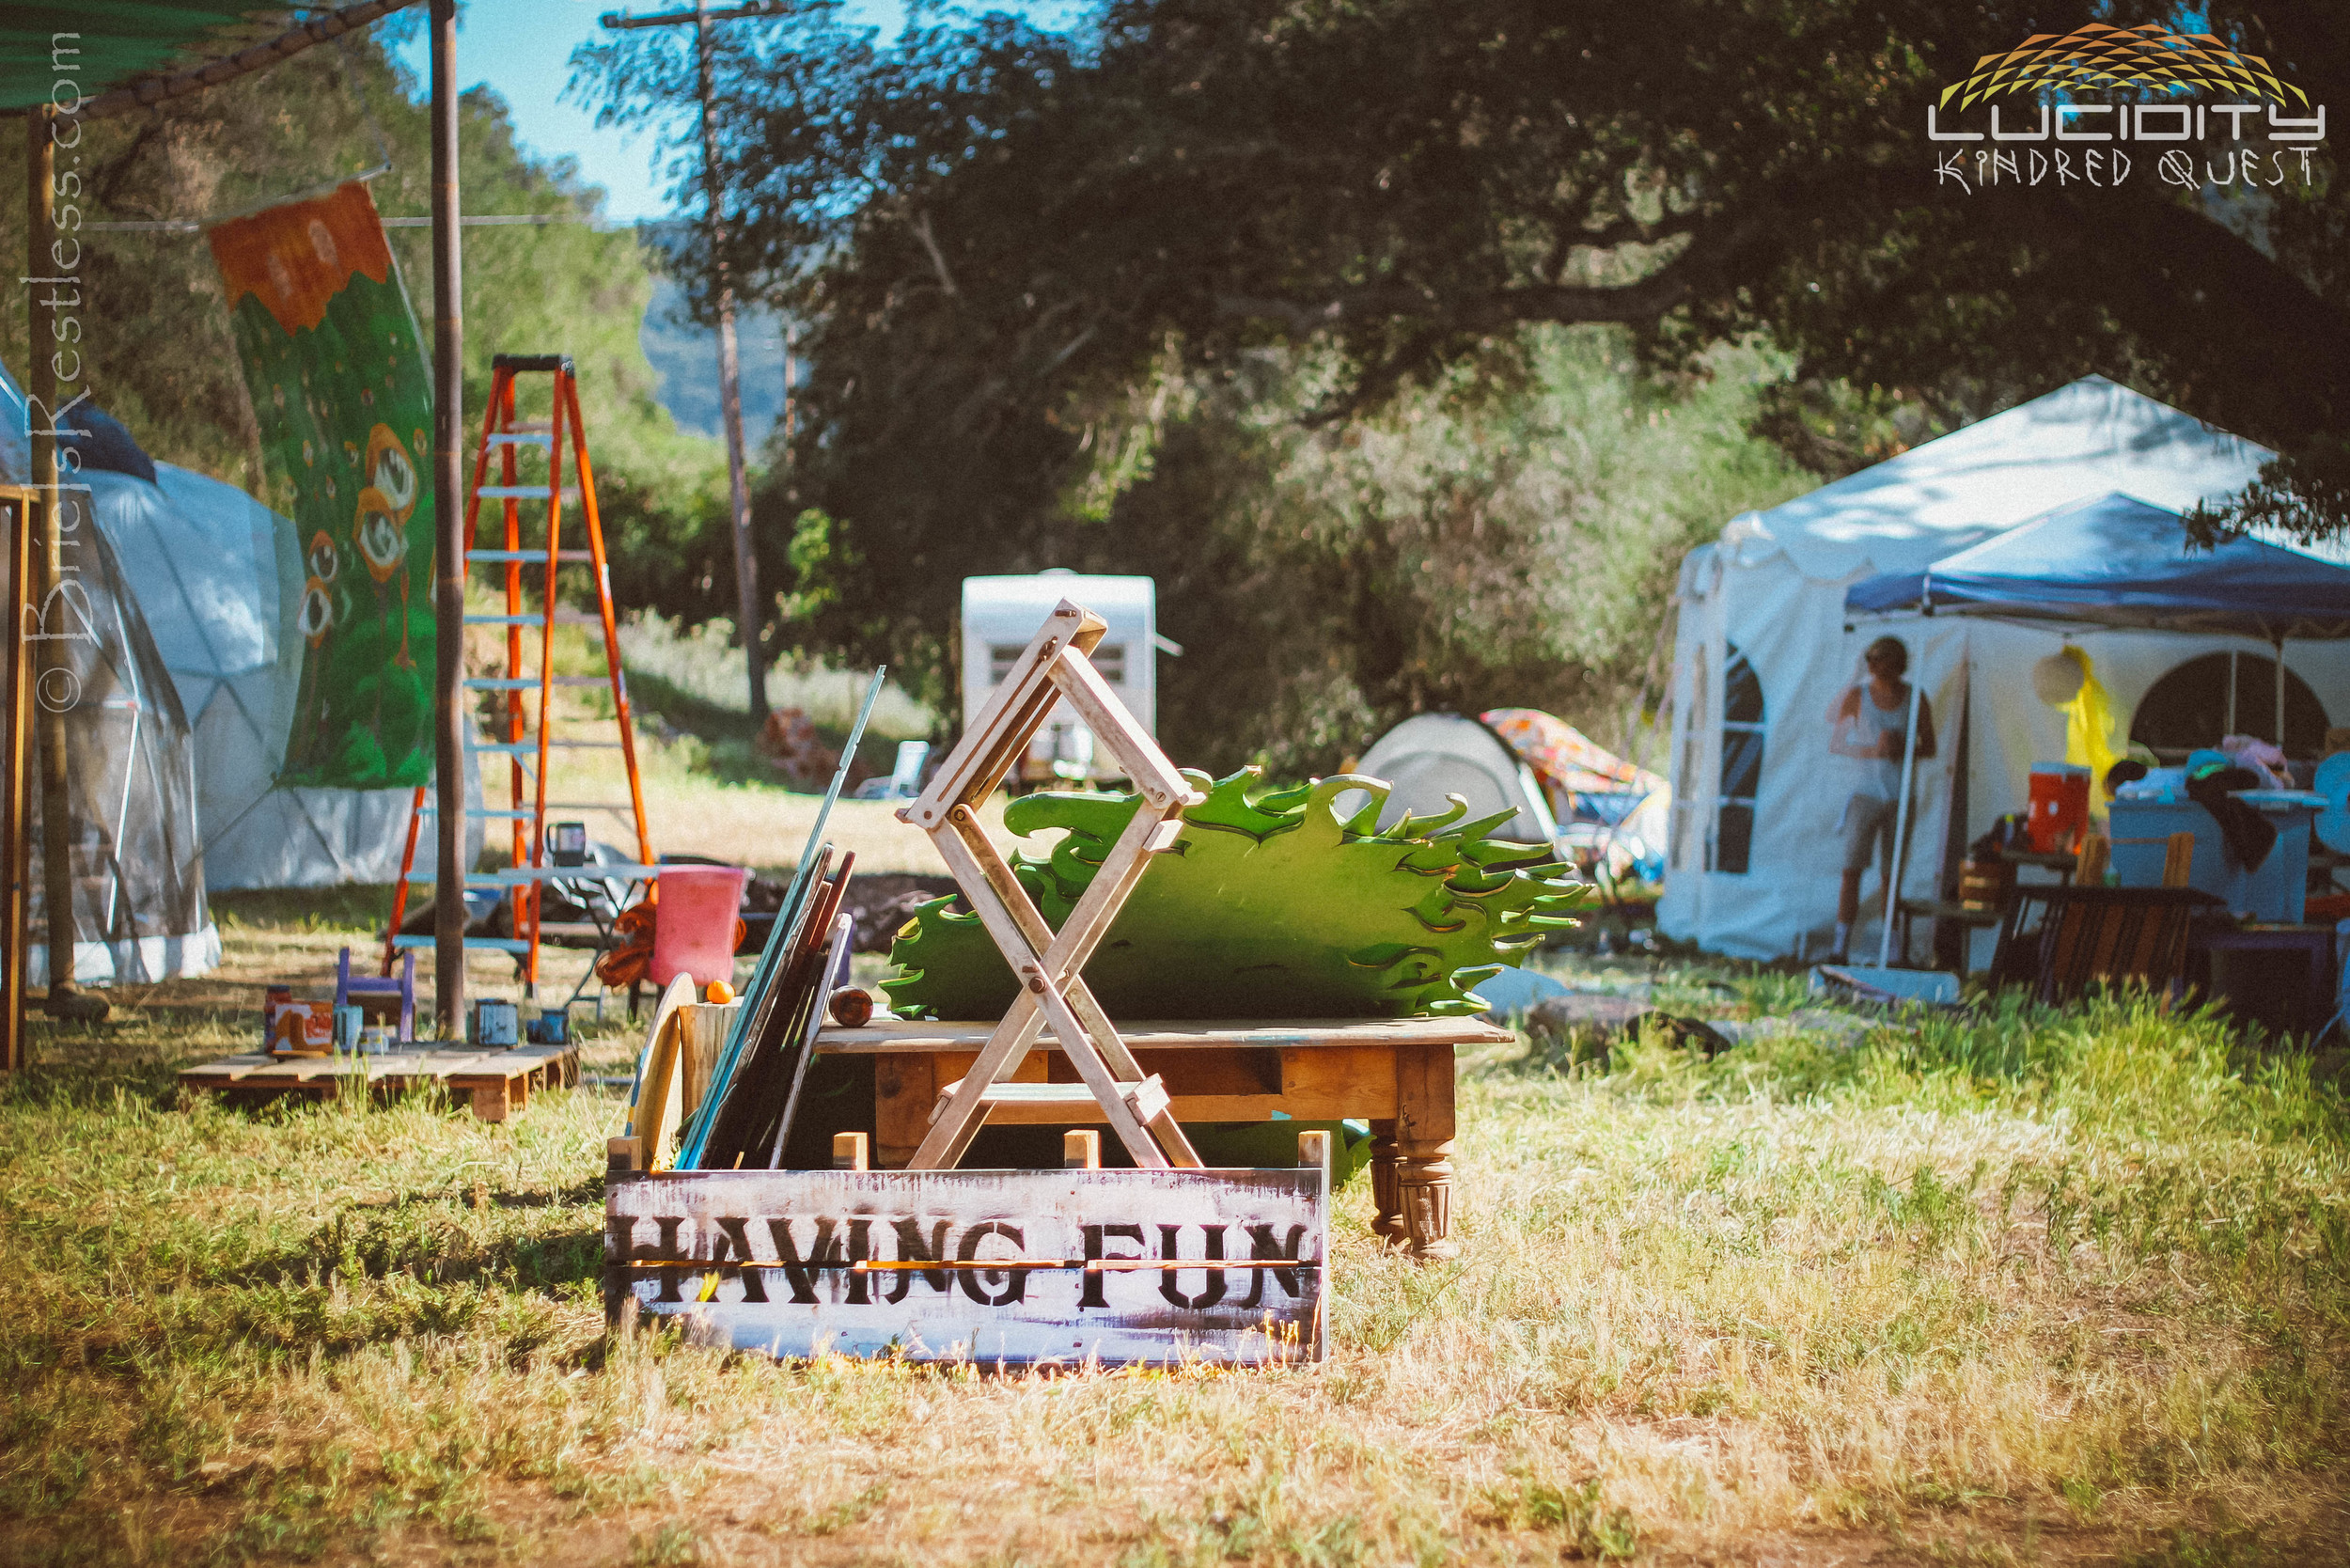 Family Garden - Having Fun Sign - Luciditiy - Kindred Quest - Build - April 2015 (1 of 1)-1.JPG